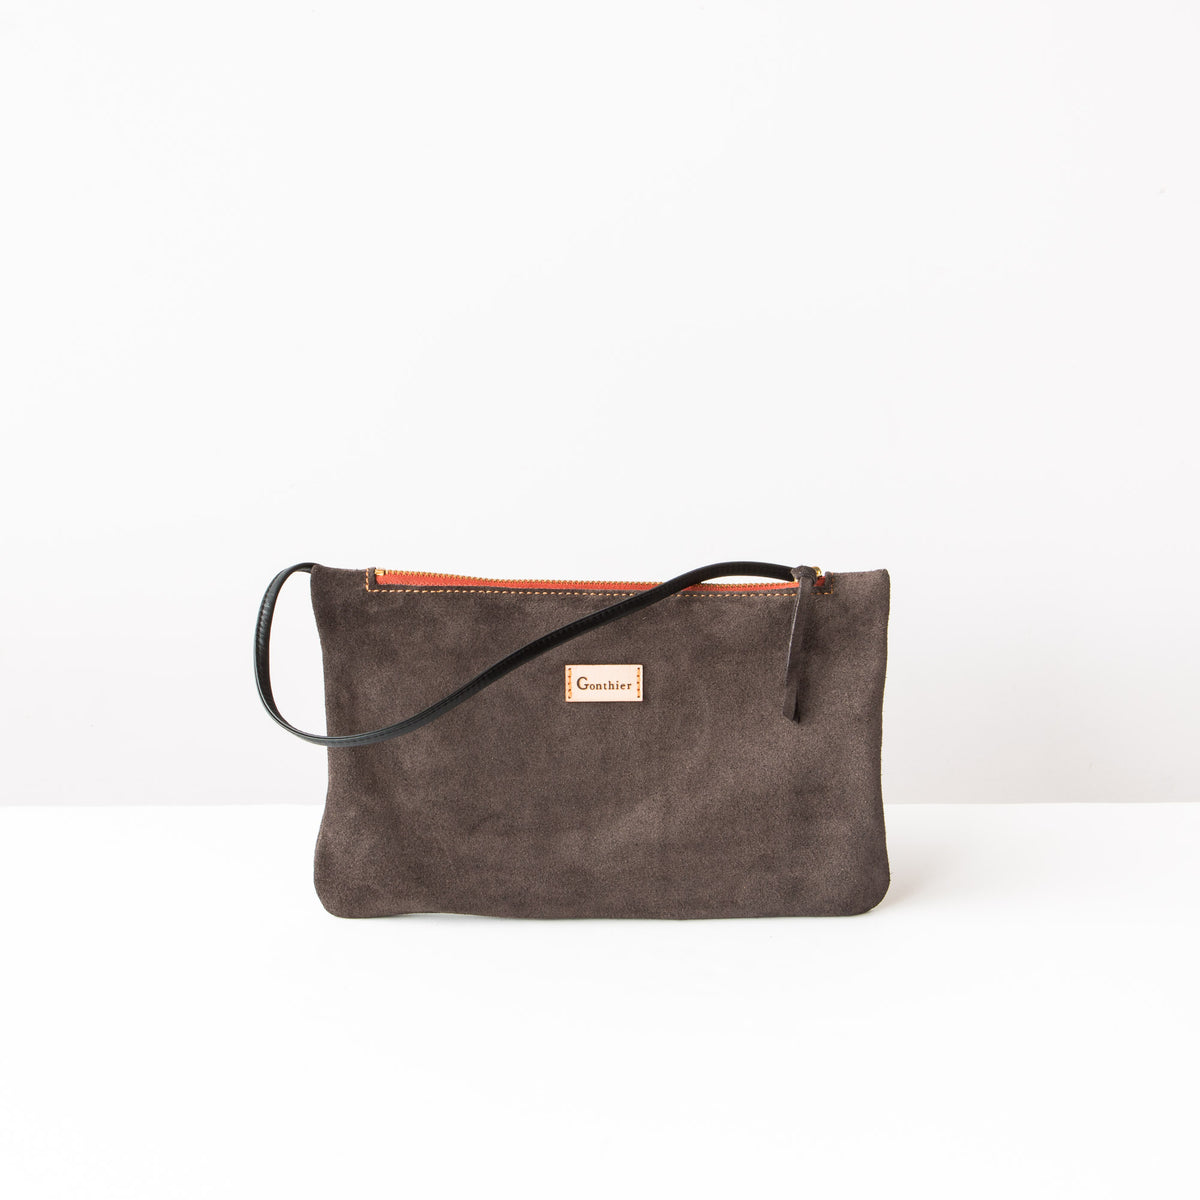 Front View - Greystone & Orange - Handmade Small Shoulder Bag in Suede Calfskin - Sold by Chic & Basta